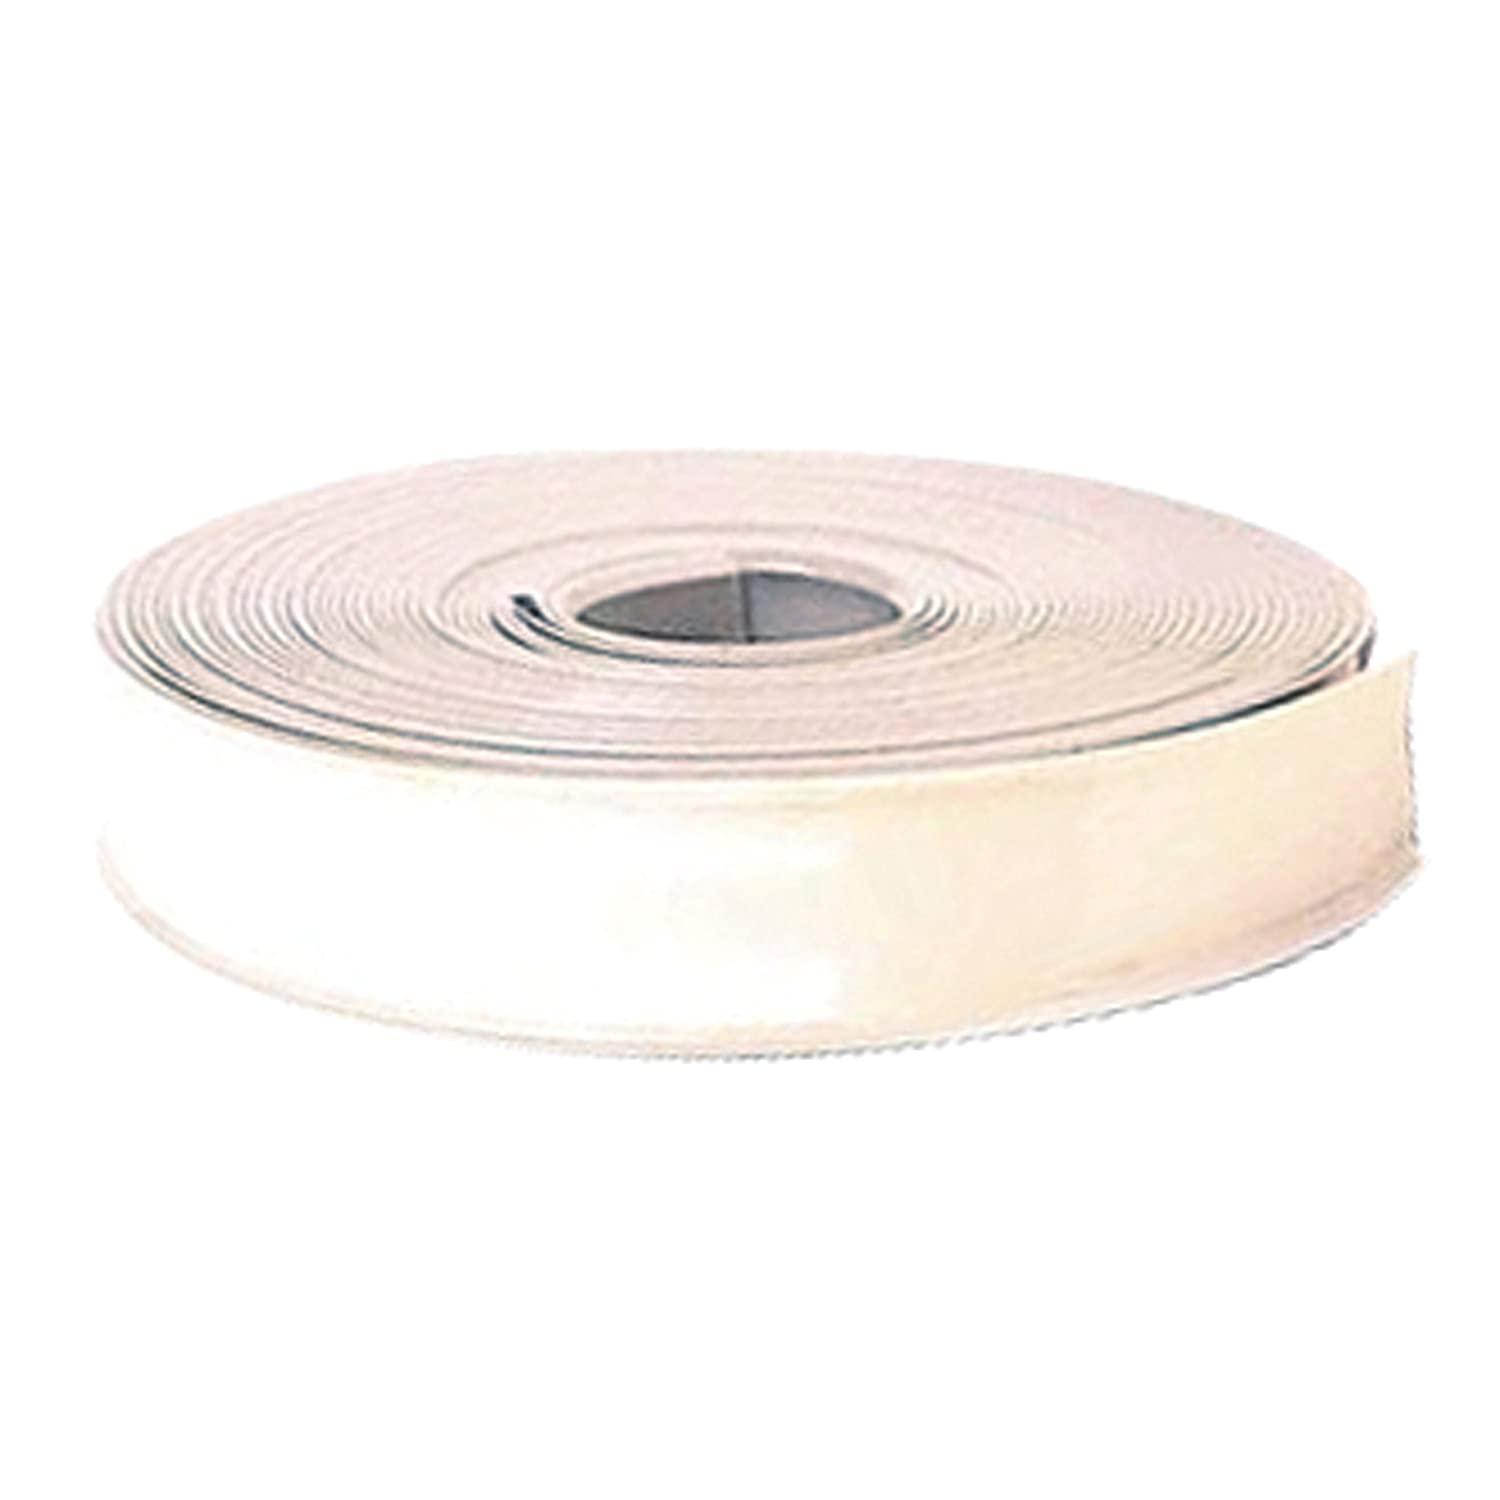 JR Products 10121 White 100' Premium Vinyl Insert